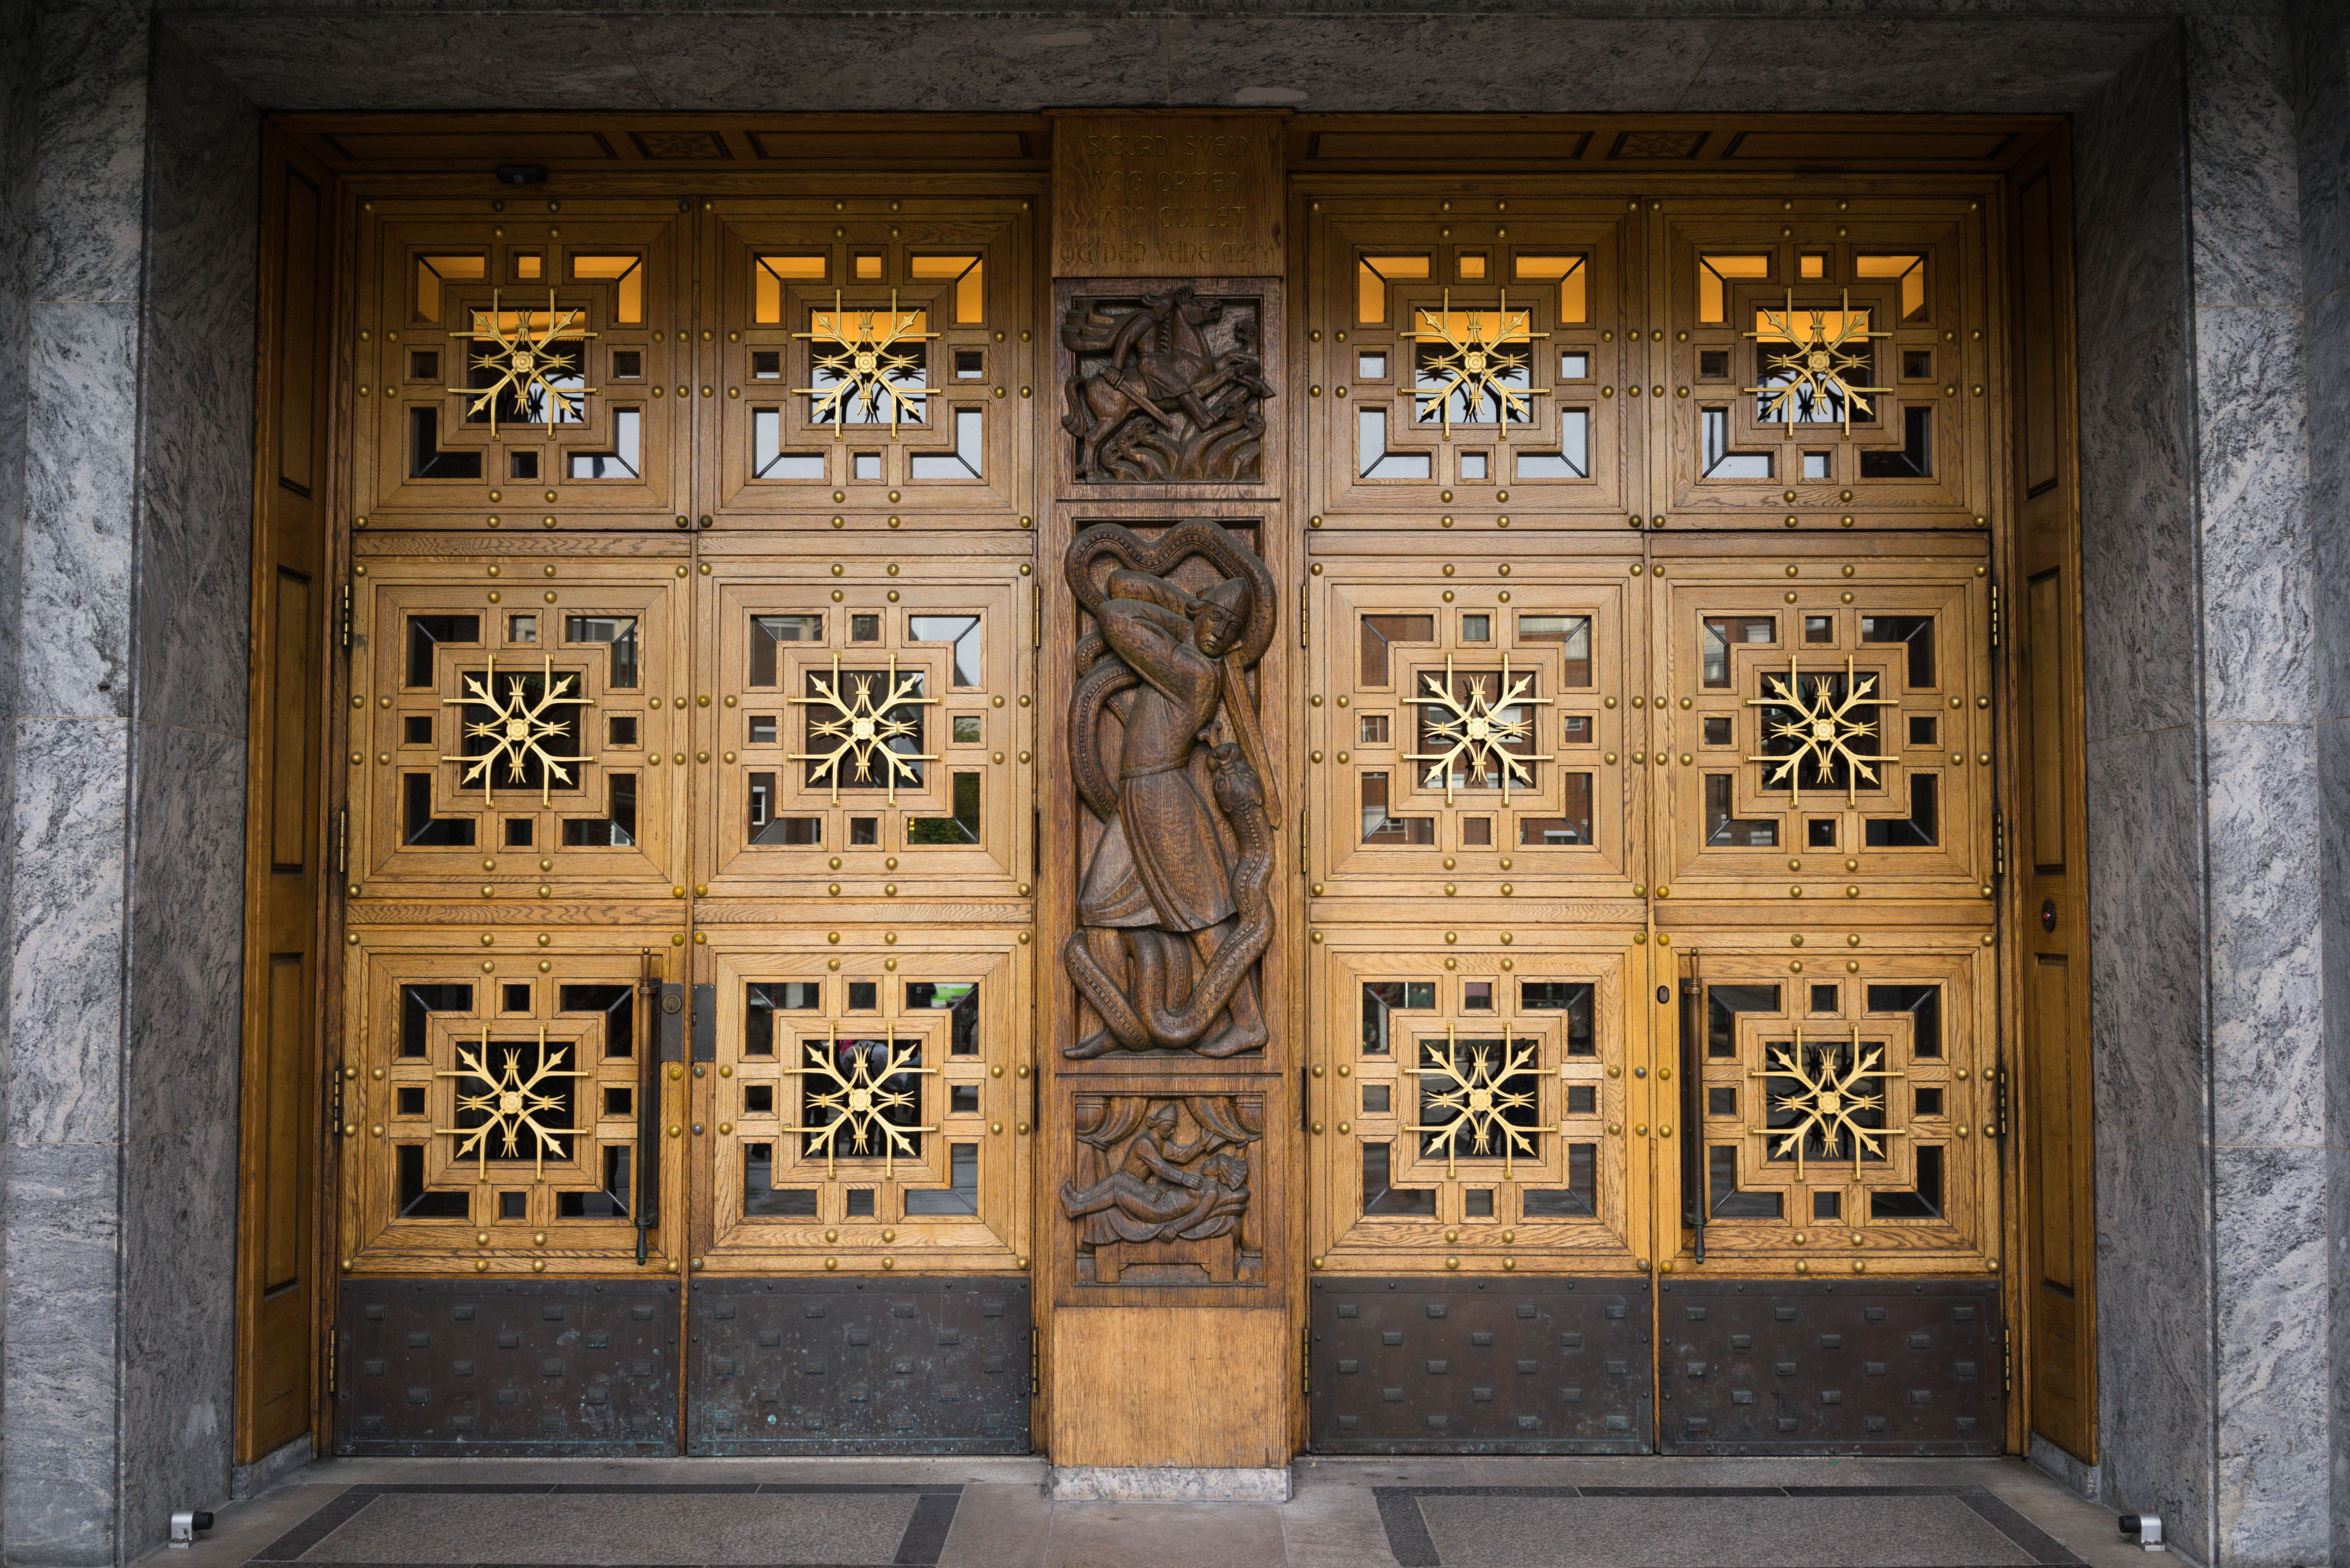 carved panels, six on each door, with carved sculpture between the doors